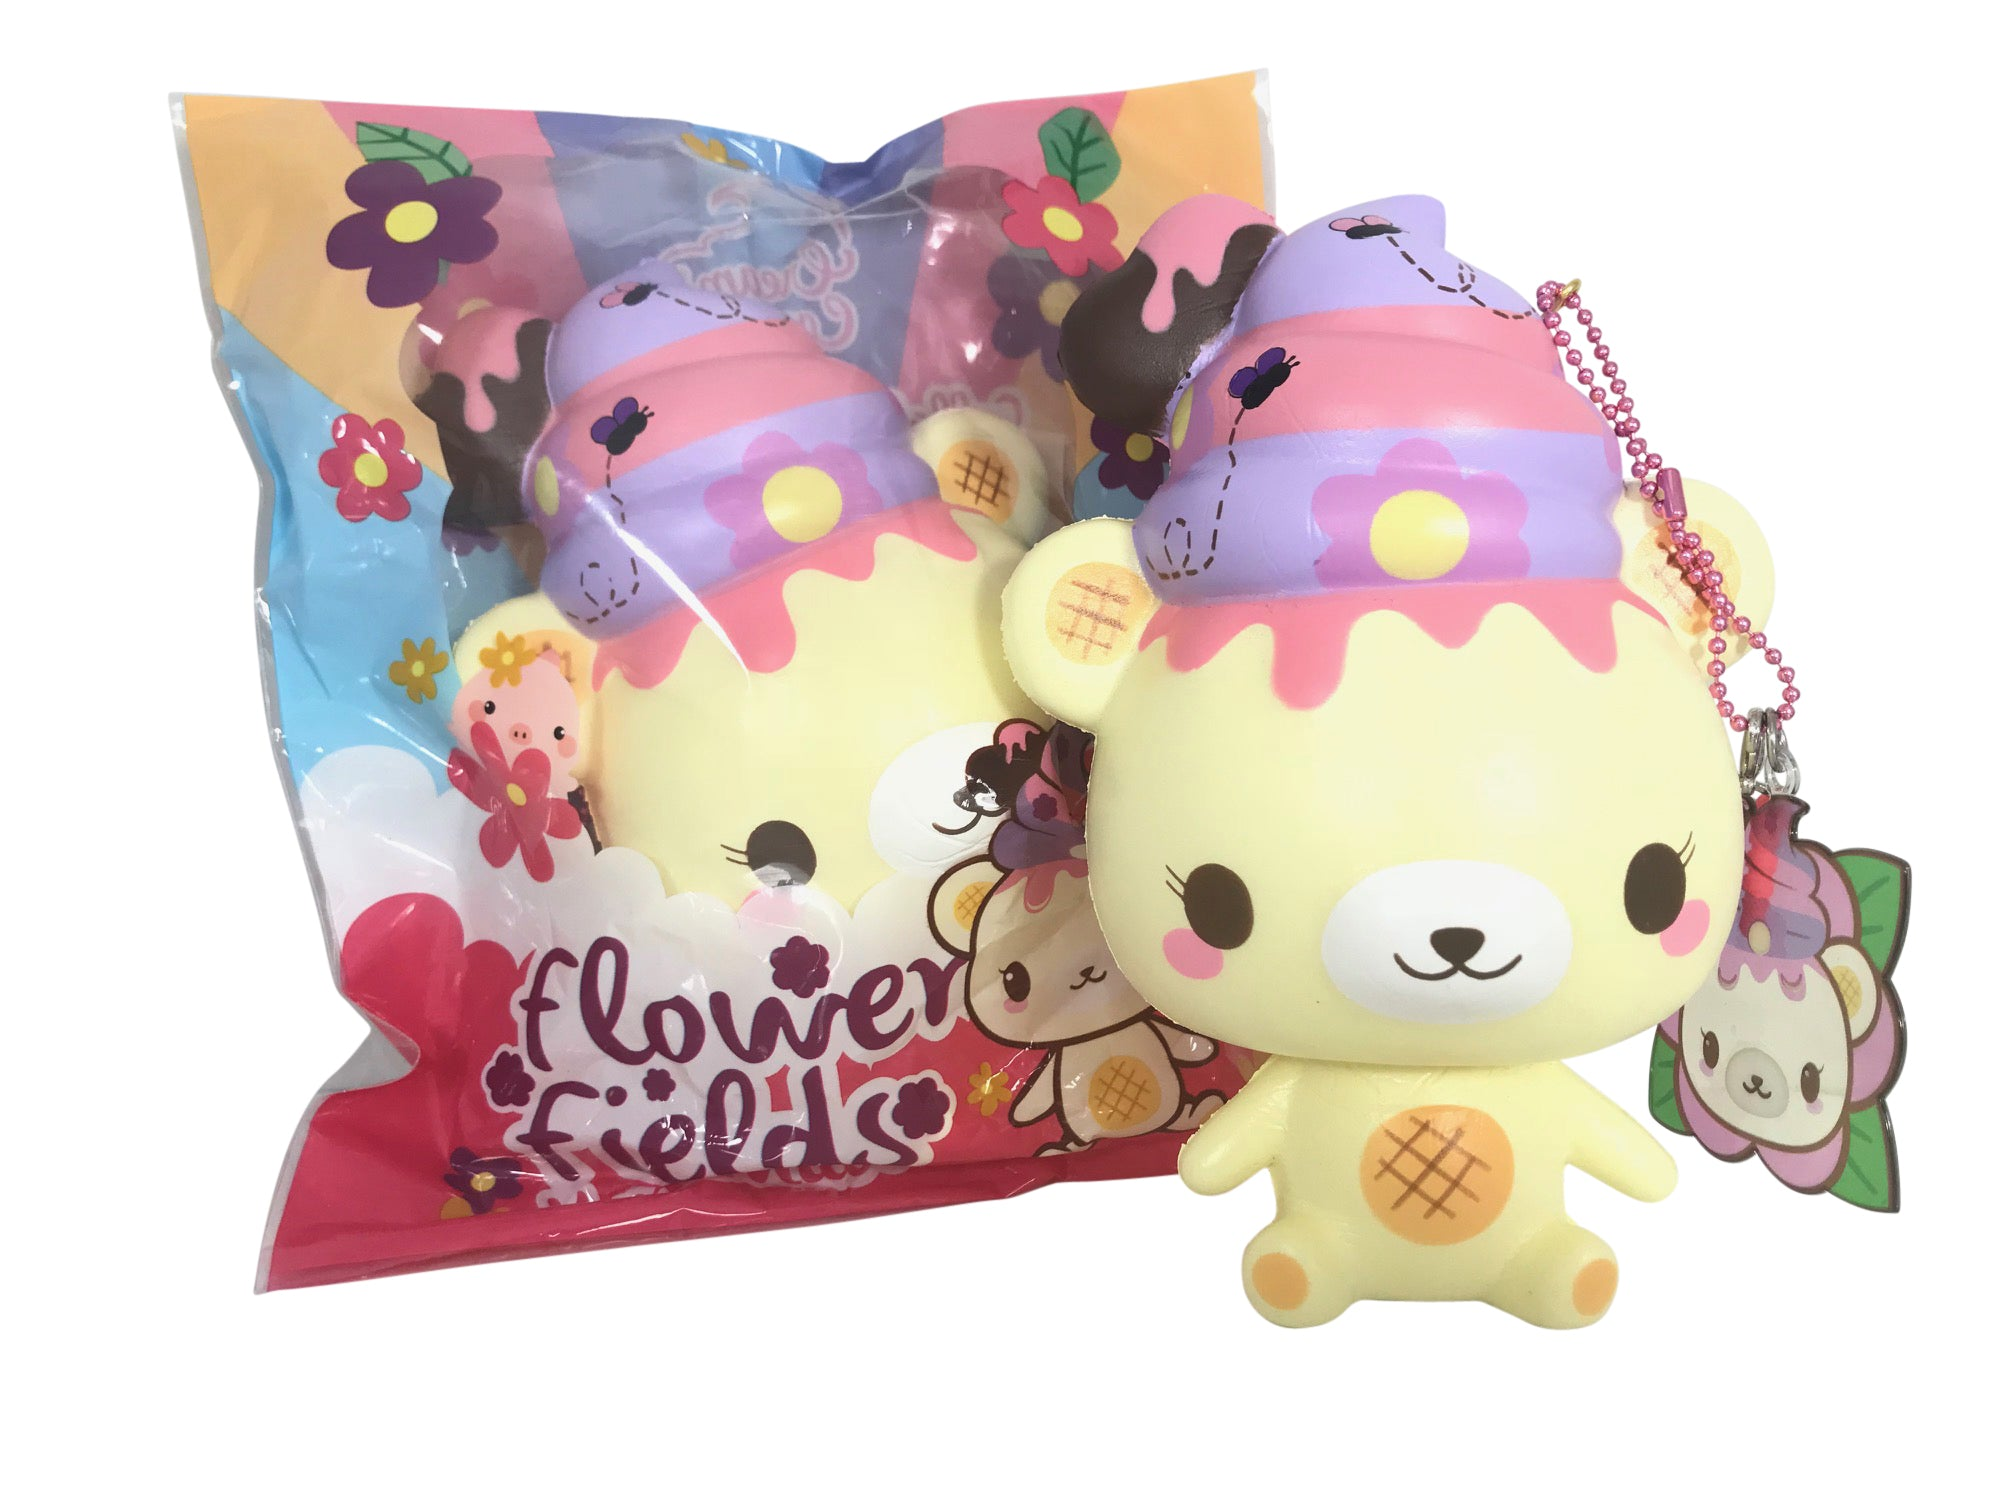 Floral SCENTED Flower Fields YUMMIIBEAR Squishy!